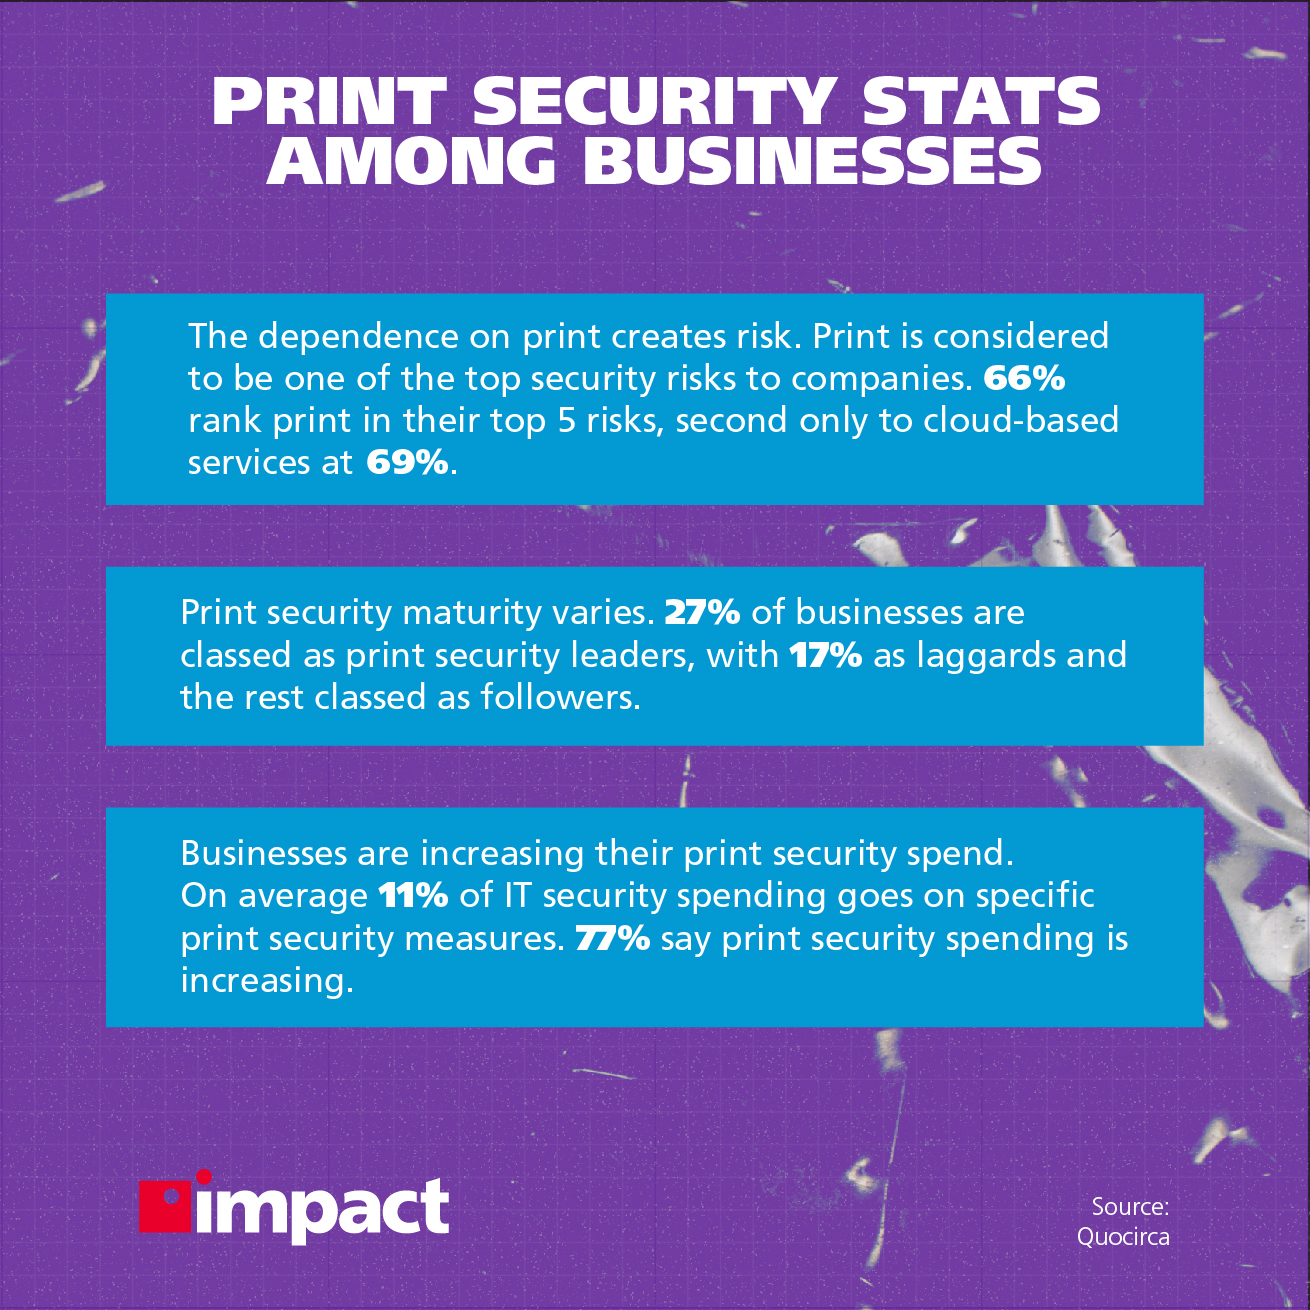 Print security stats among businesses